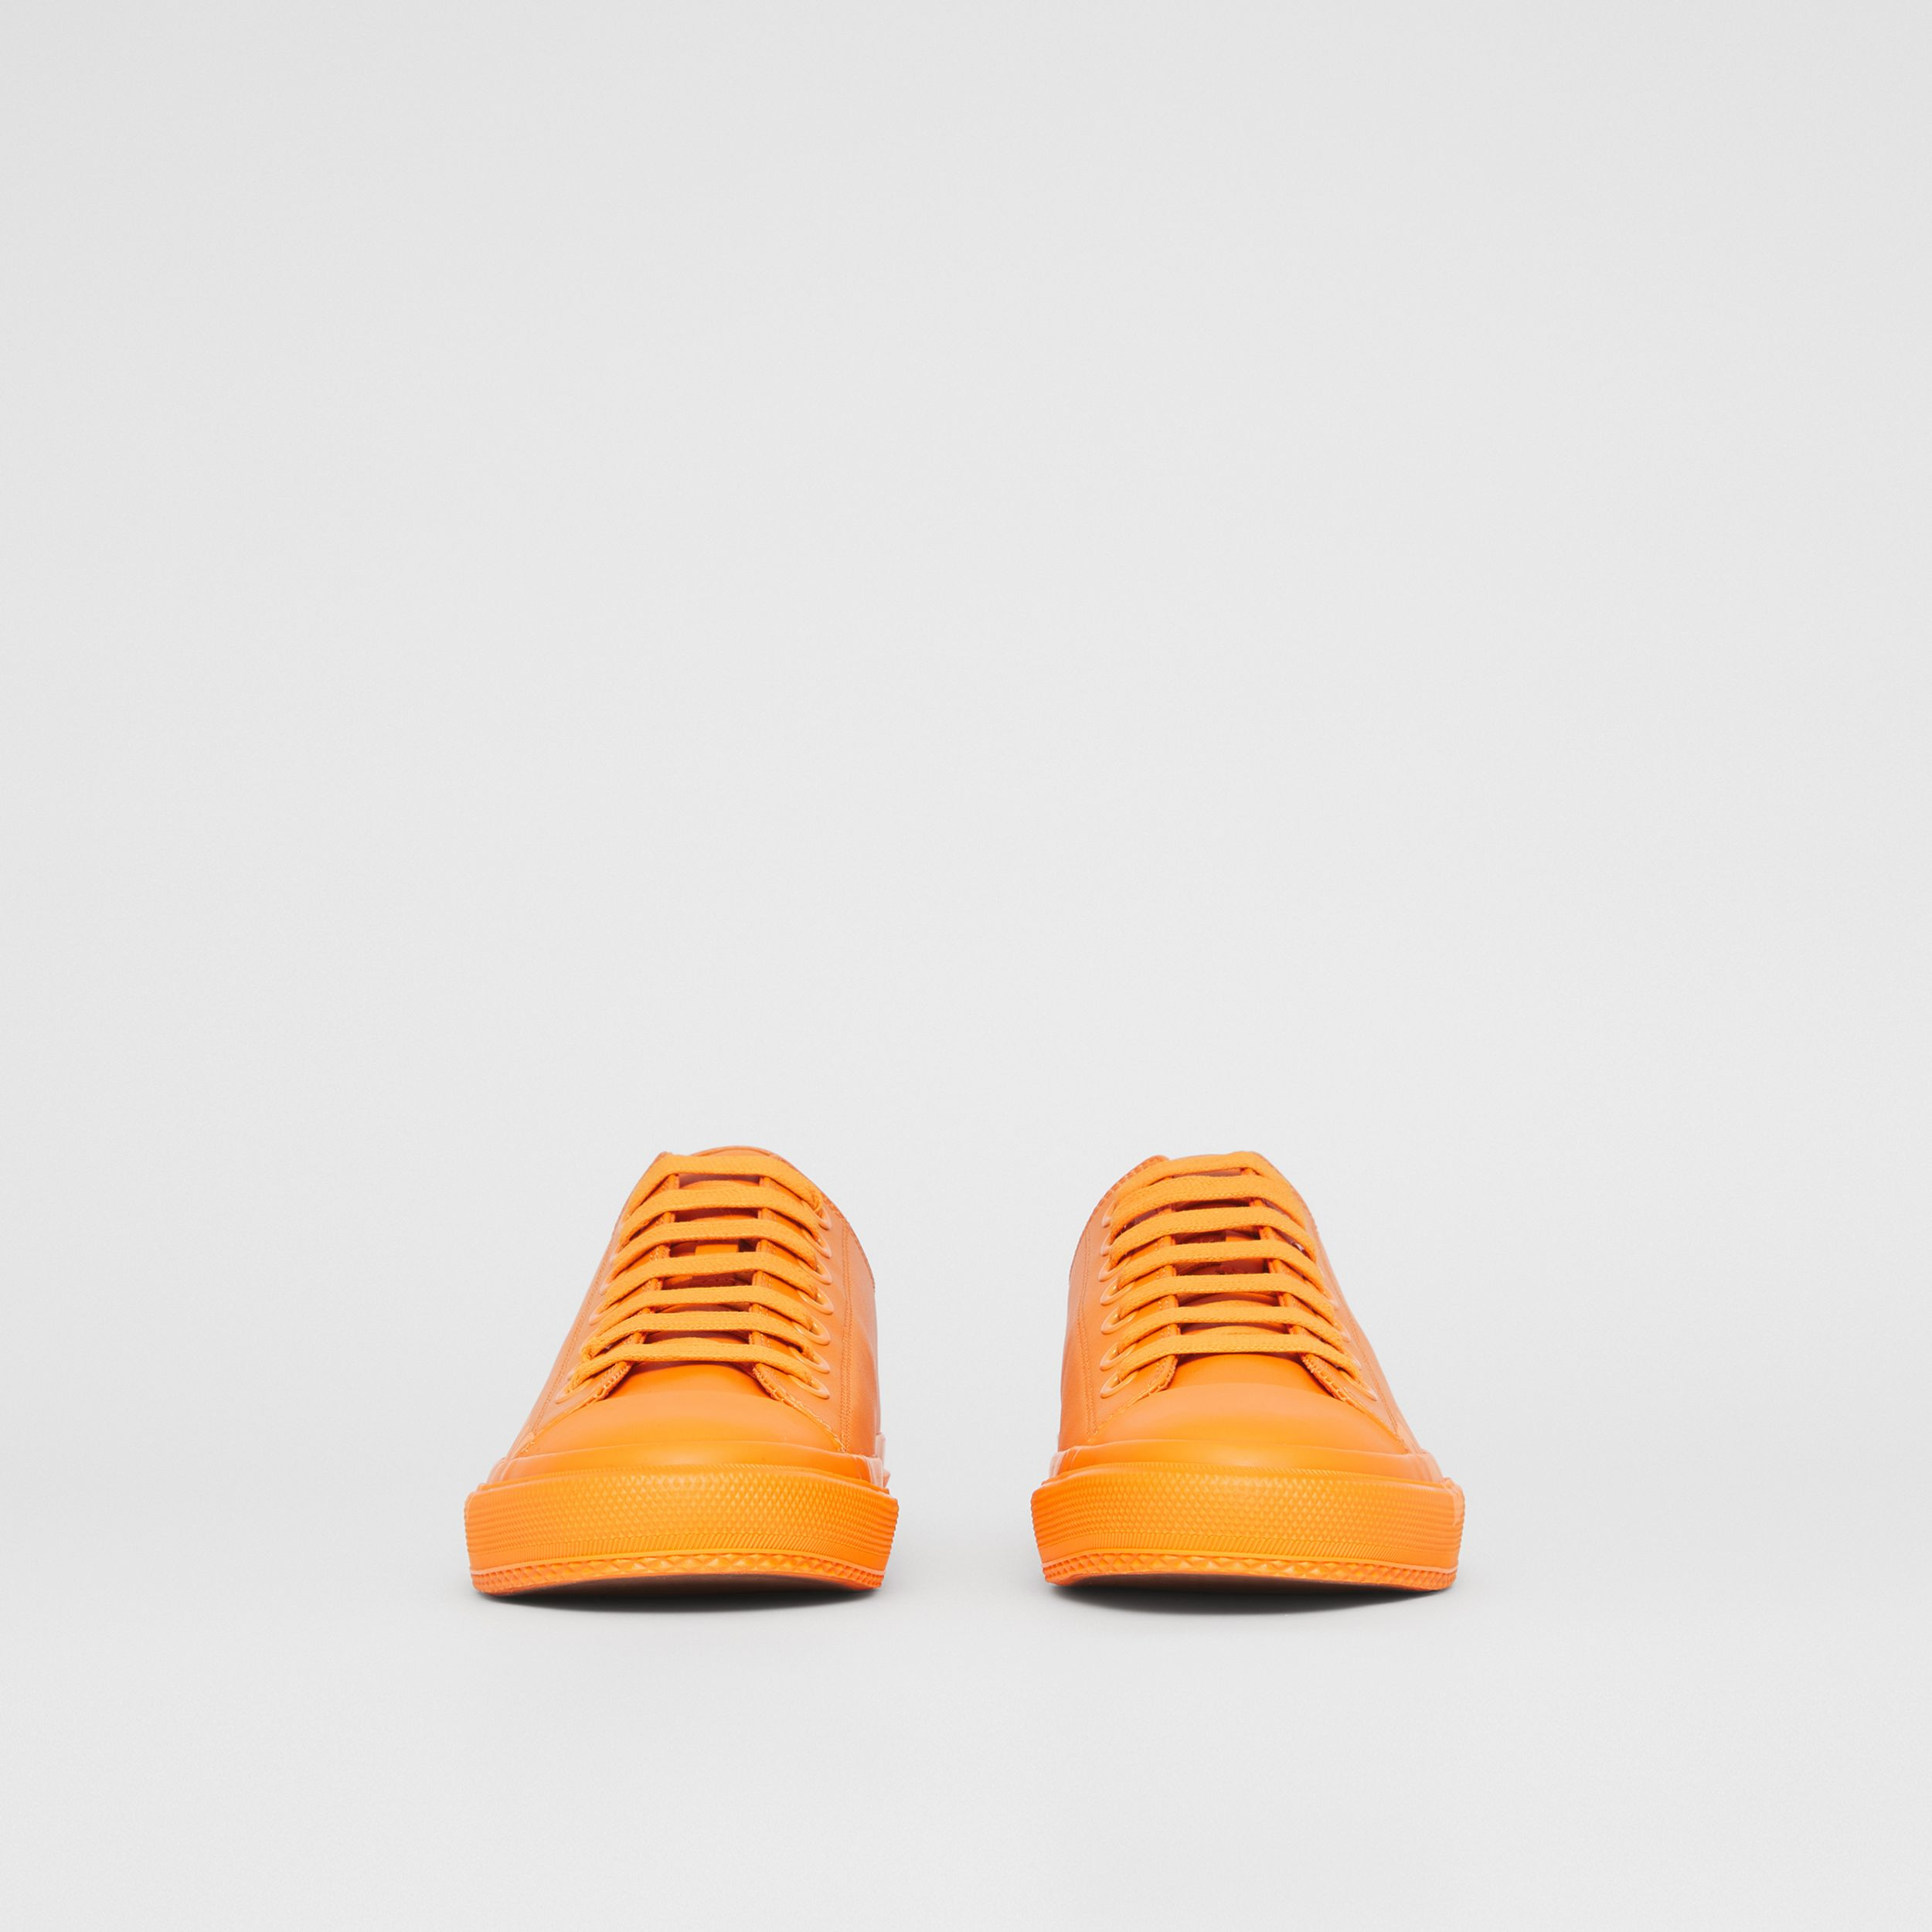 Logo Print Leather Sneakers – Online Exclusive in Deep Orange - Women | Burberry - 3